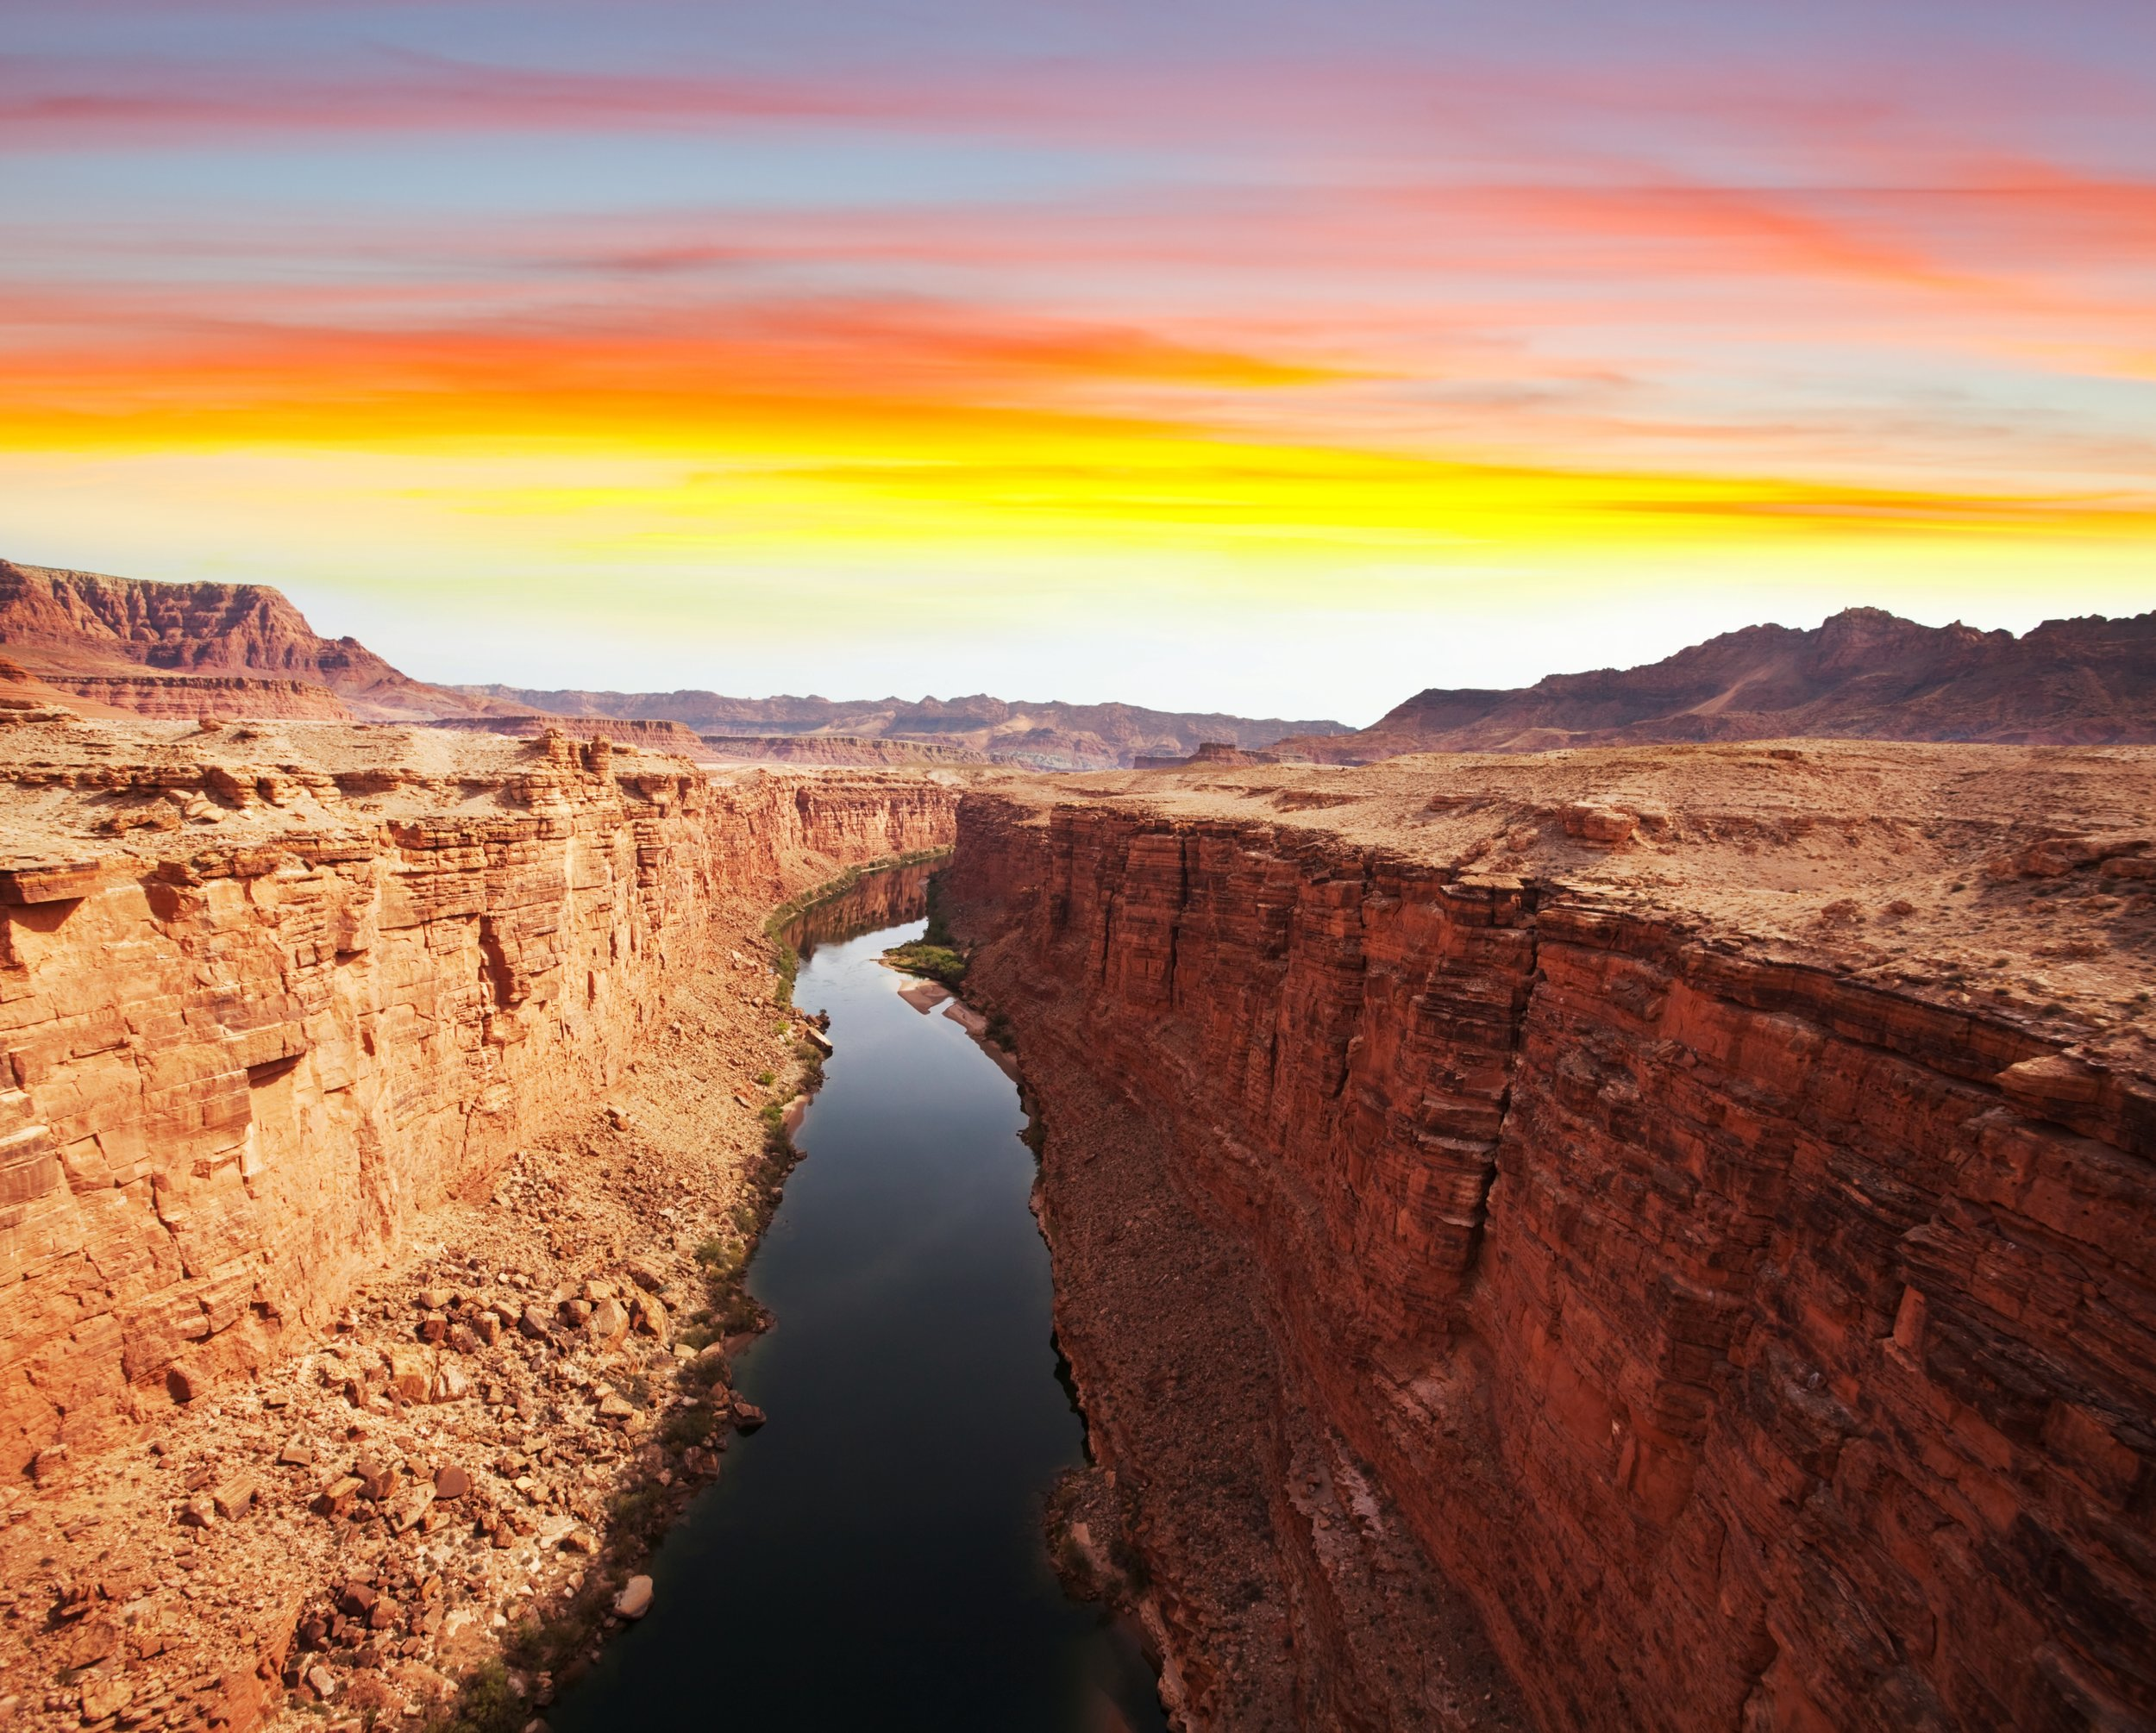 5colorado_river_arizona.jpg